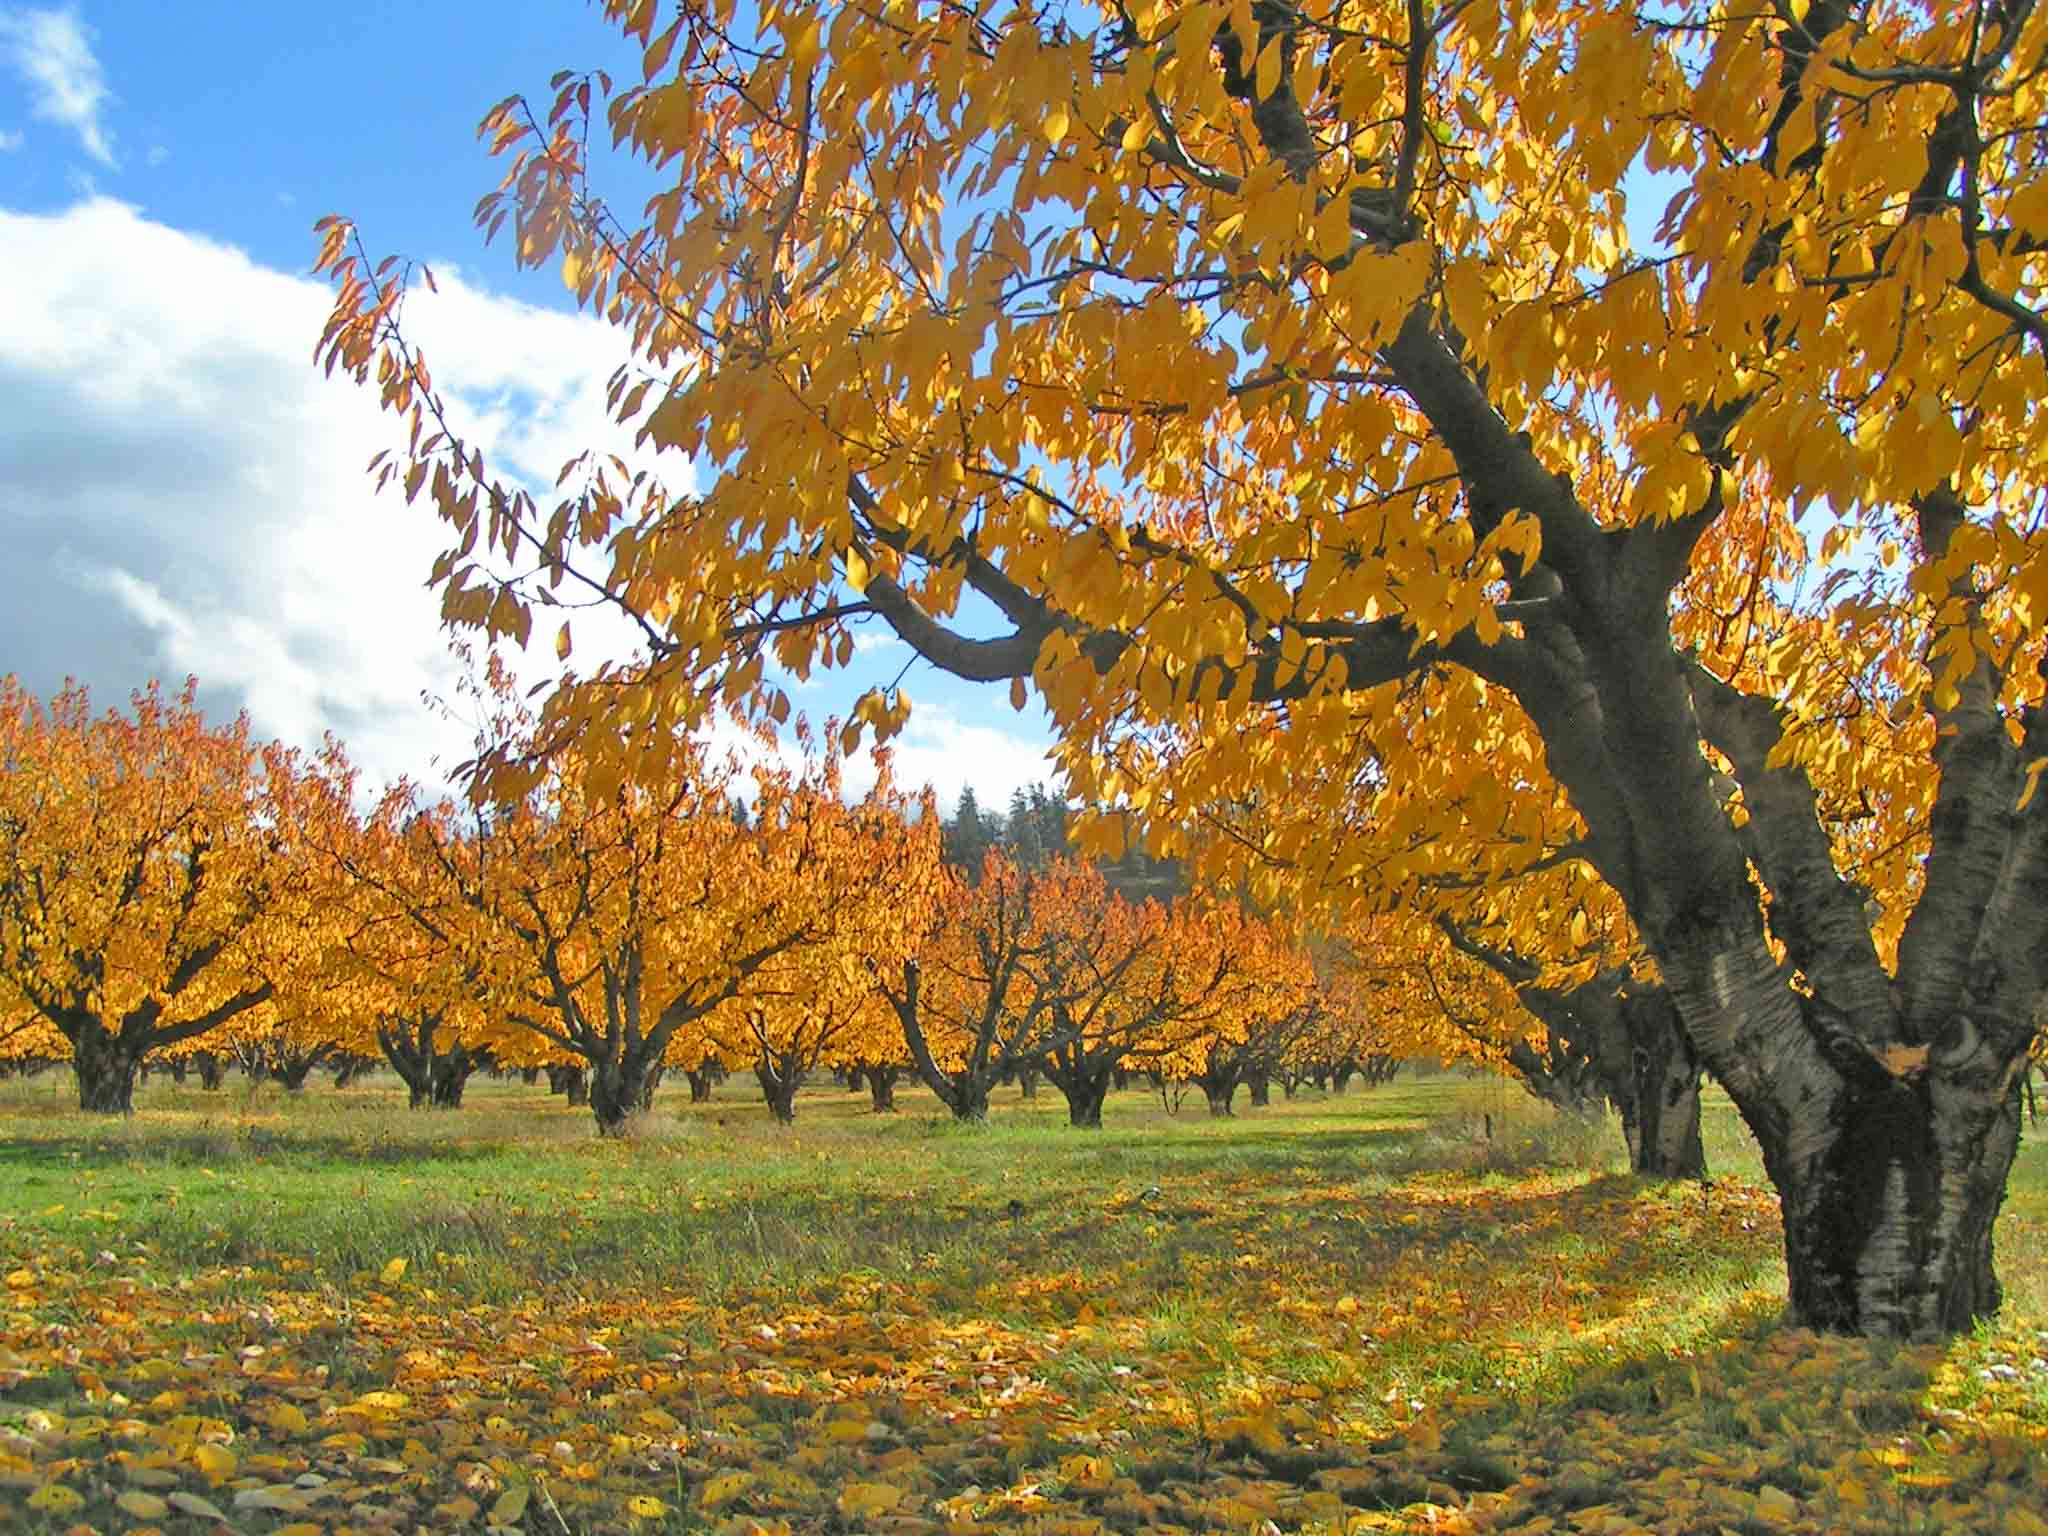 Fall leaves in our Gorge  farming community.                               Photo: (c) Barb Ayers Dog Diary.org